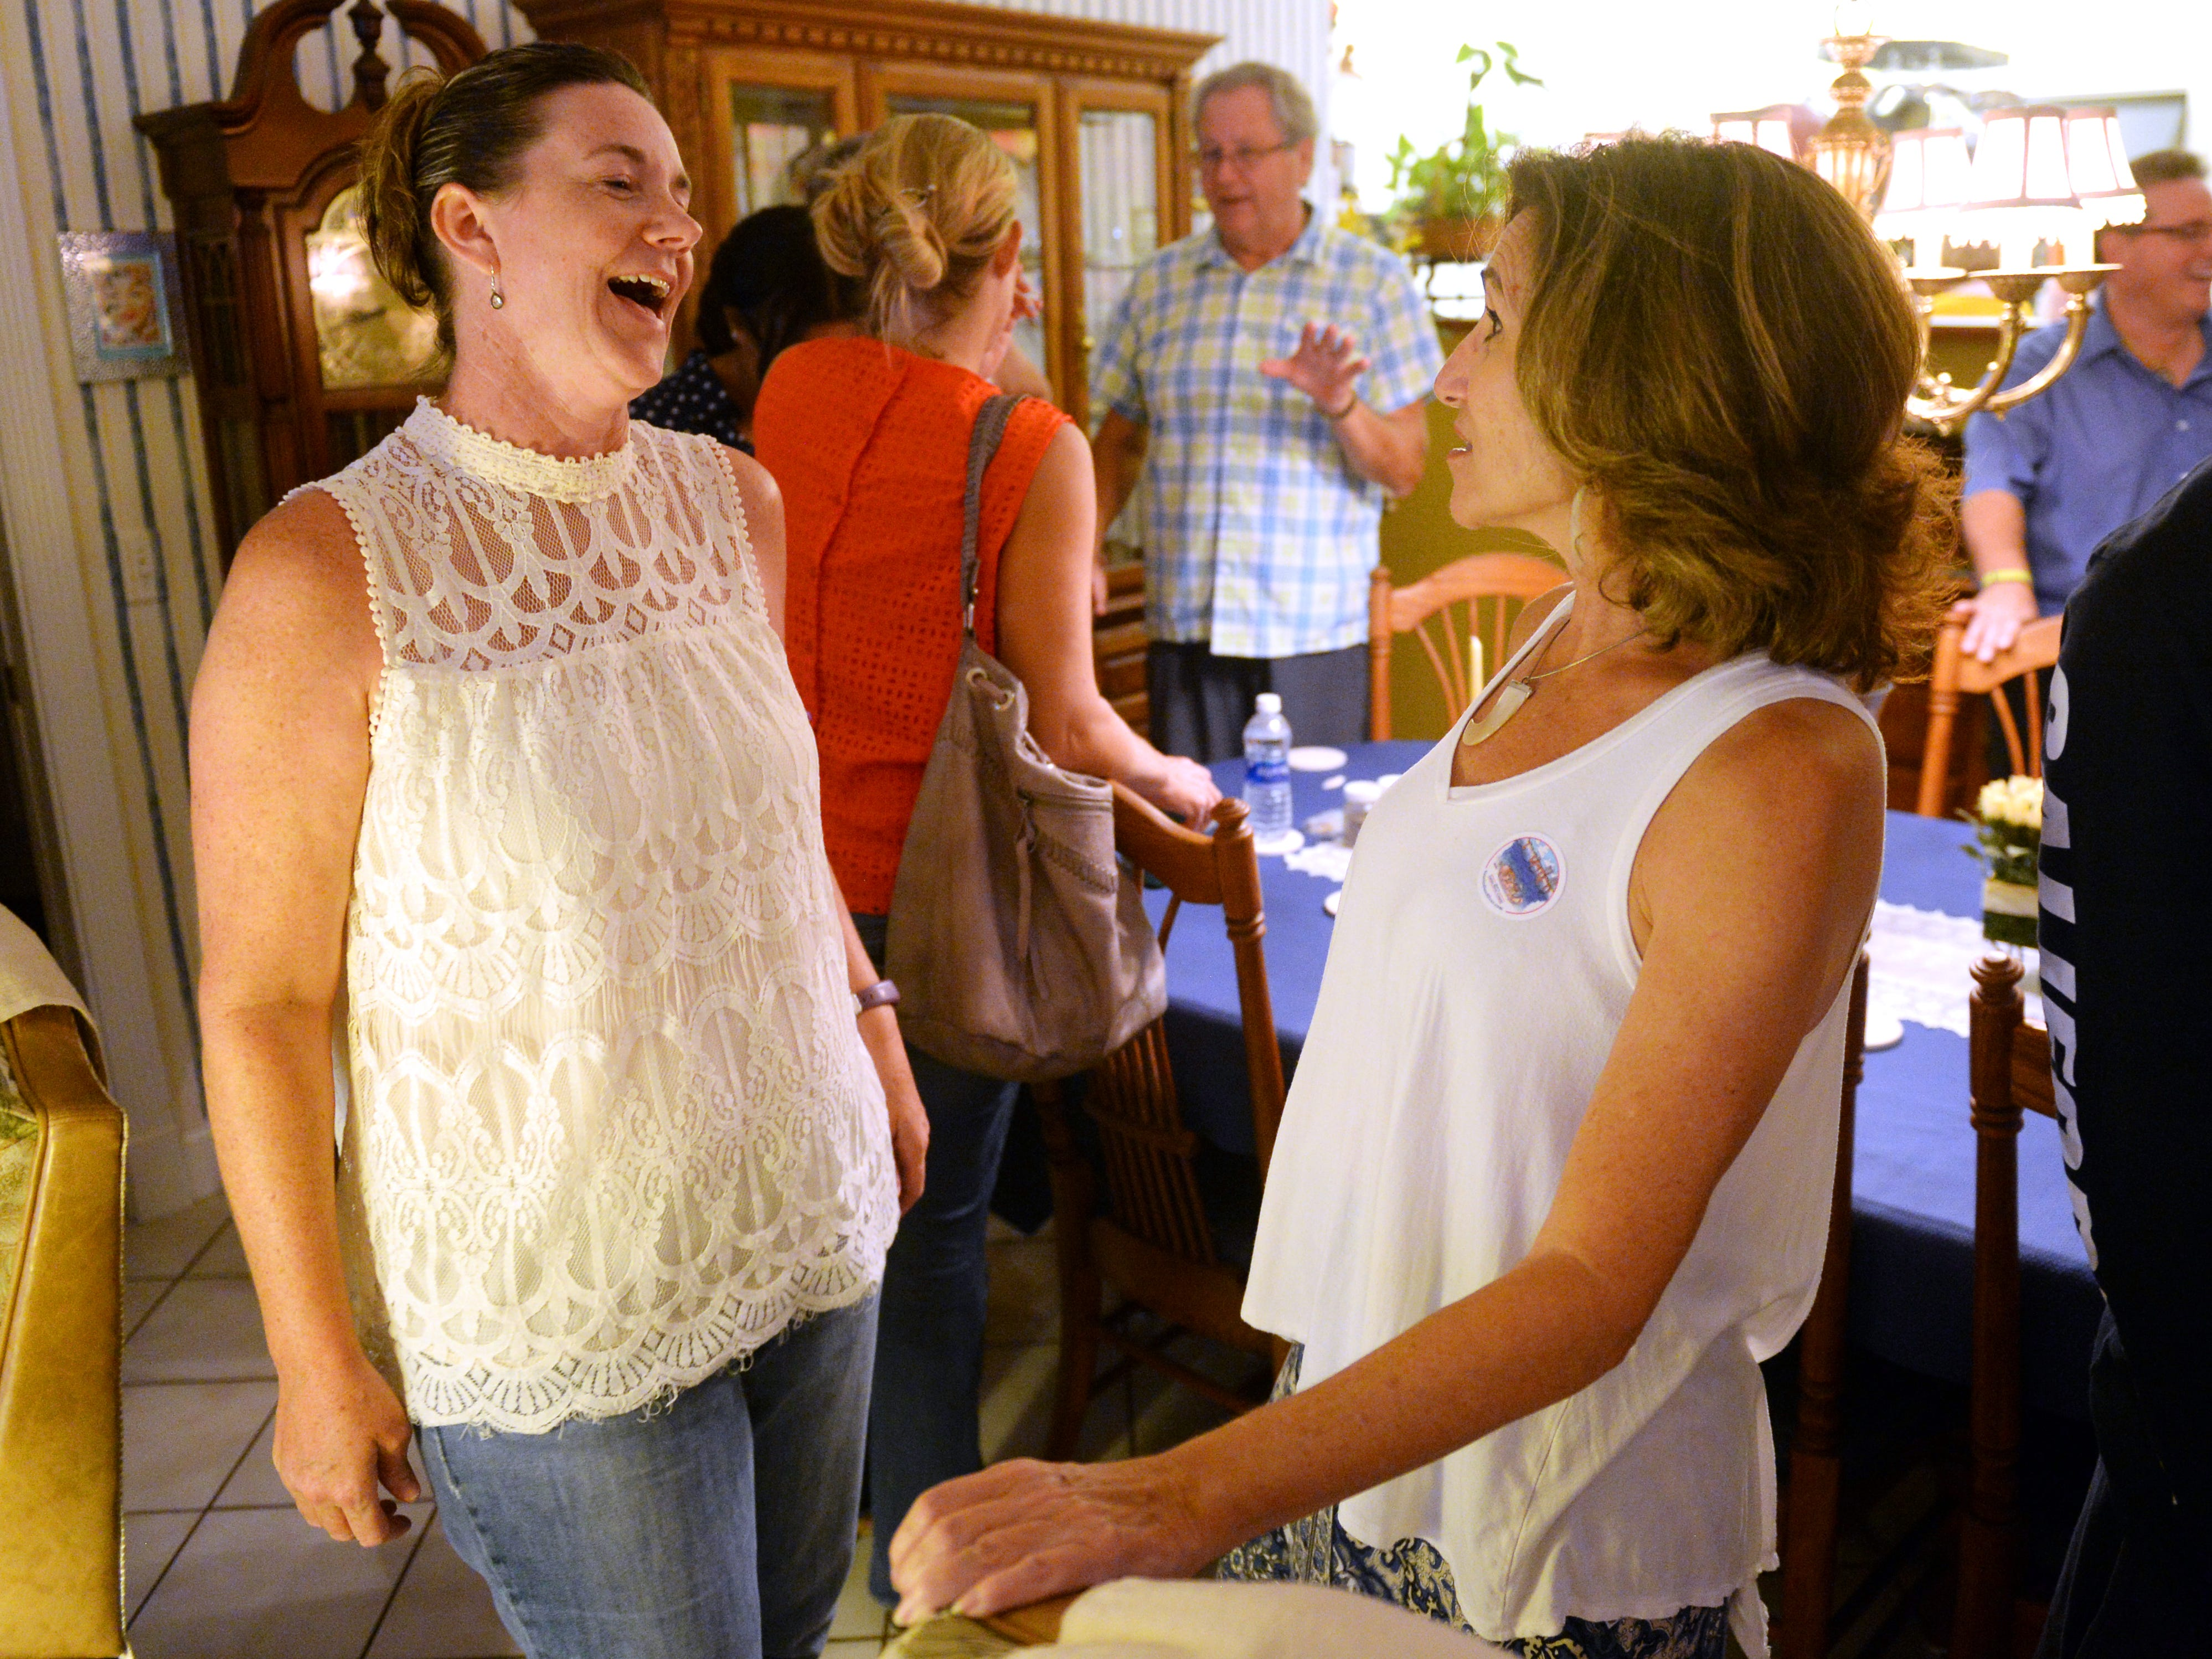 Indian River School Board candidates Mara Schiff and Stacey Klim attended an election watch party in Vero Beach, Tuesday, Aug. 28, 2018 as results are posted. Schiff won the District 1 seat over Eugene Wolff while Klim will face Teri Barenborg in a runoff in November.